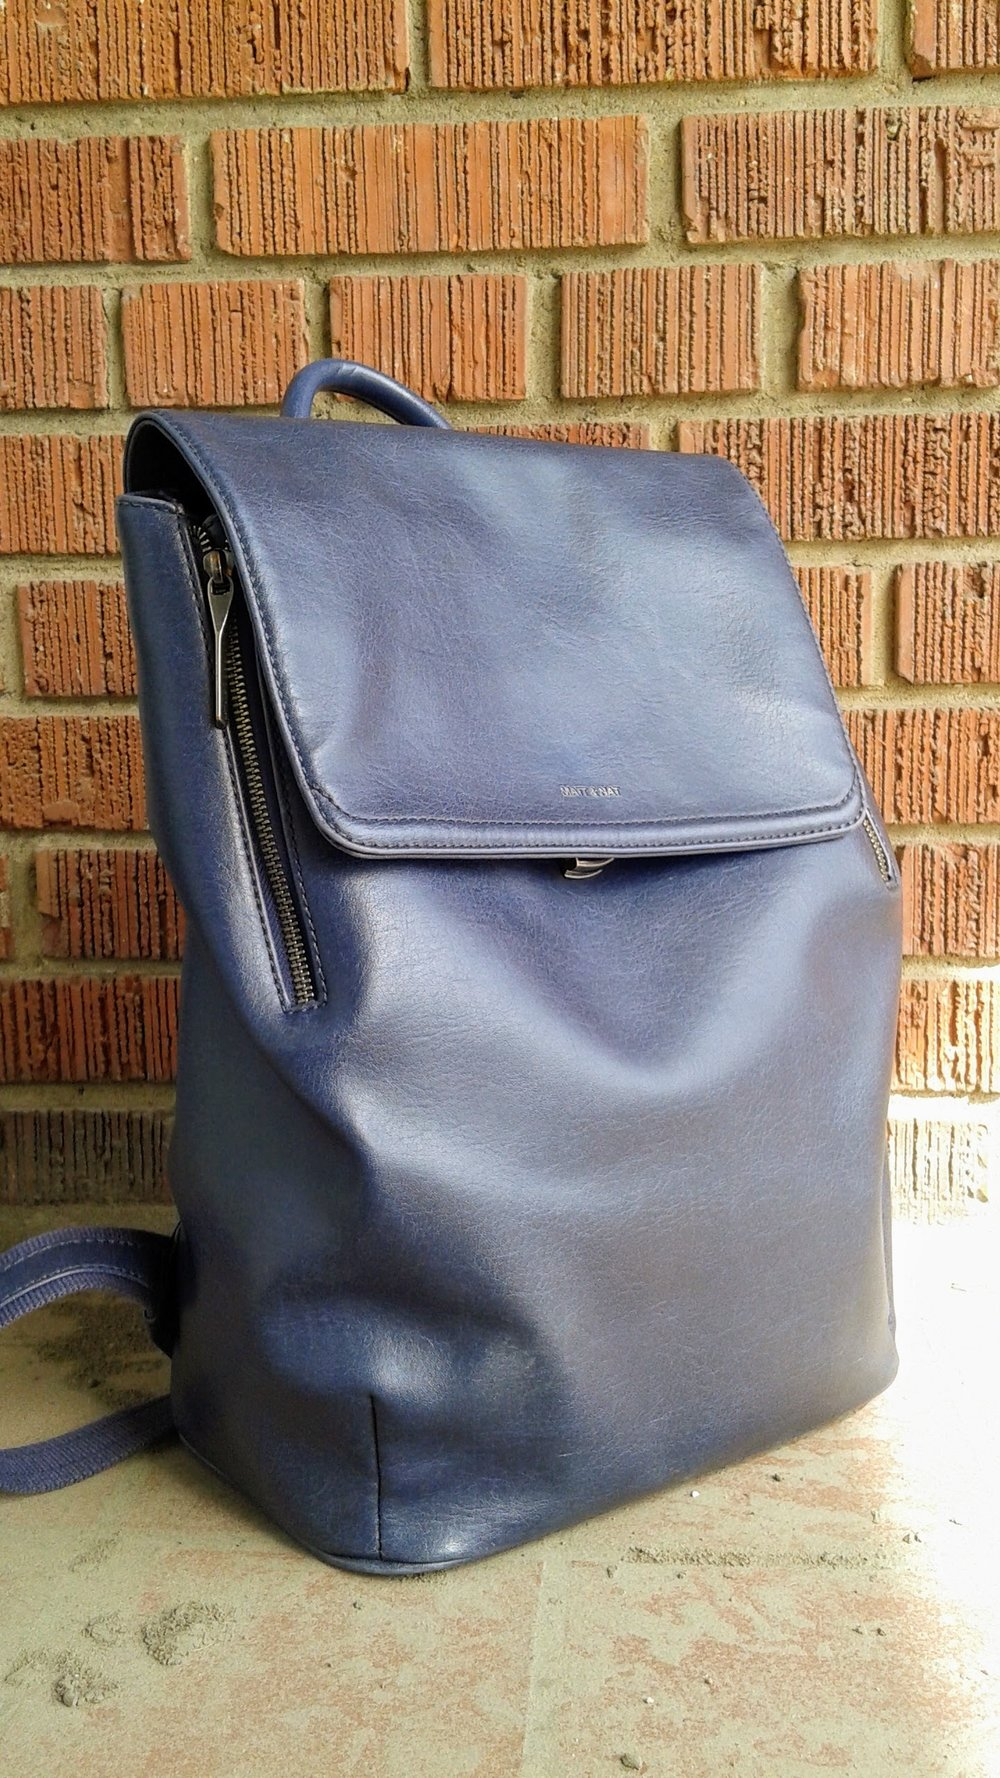 Matt&Nat backpack, $64